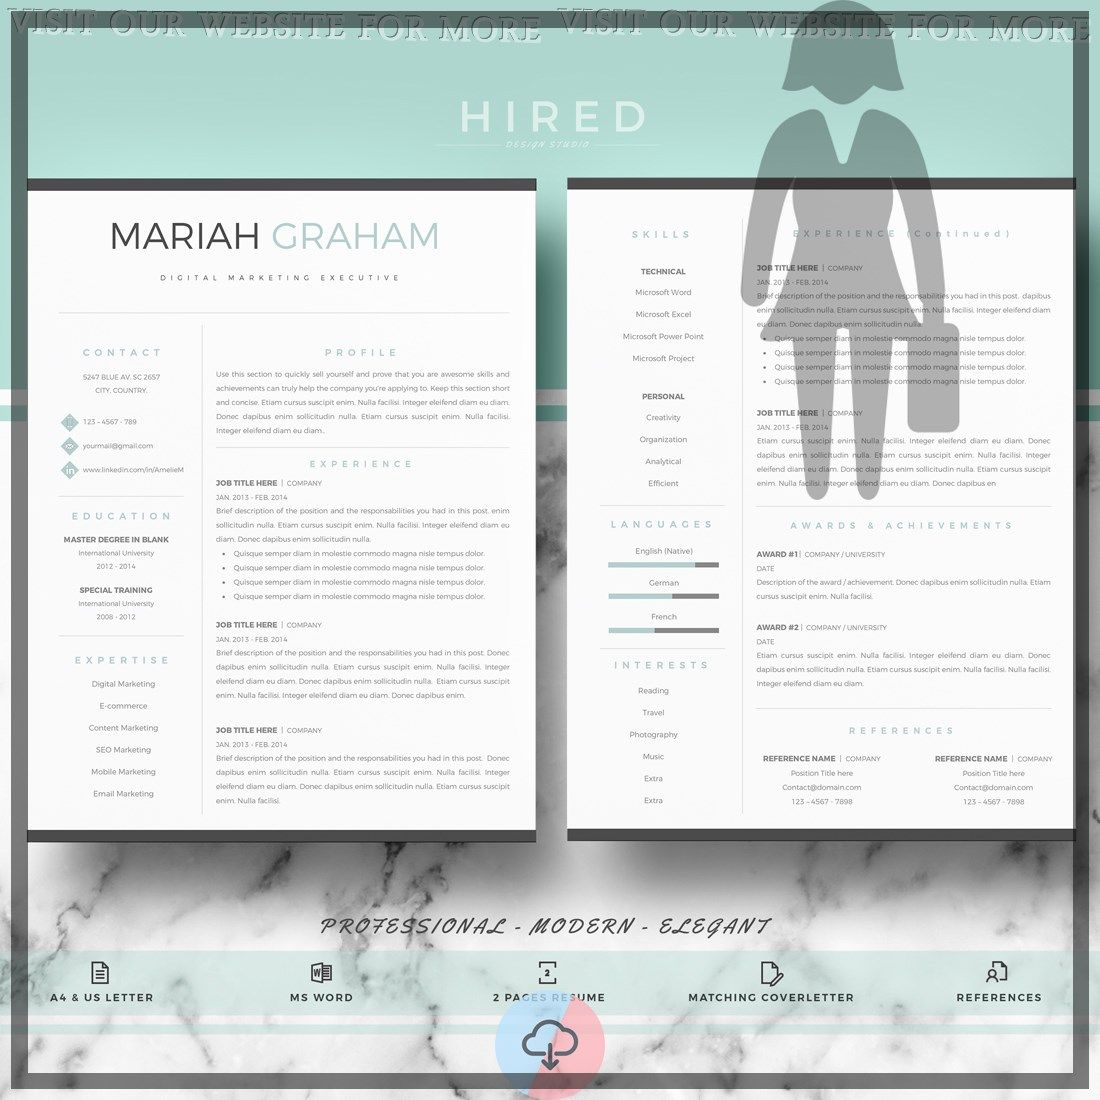 24+ Perfect modern resume design creative layout in 2020